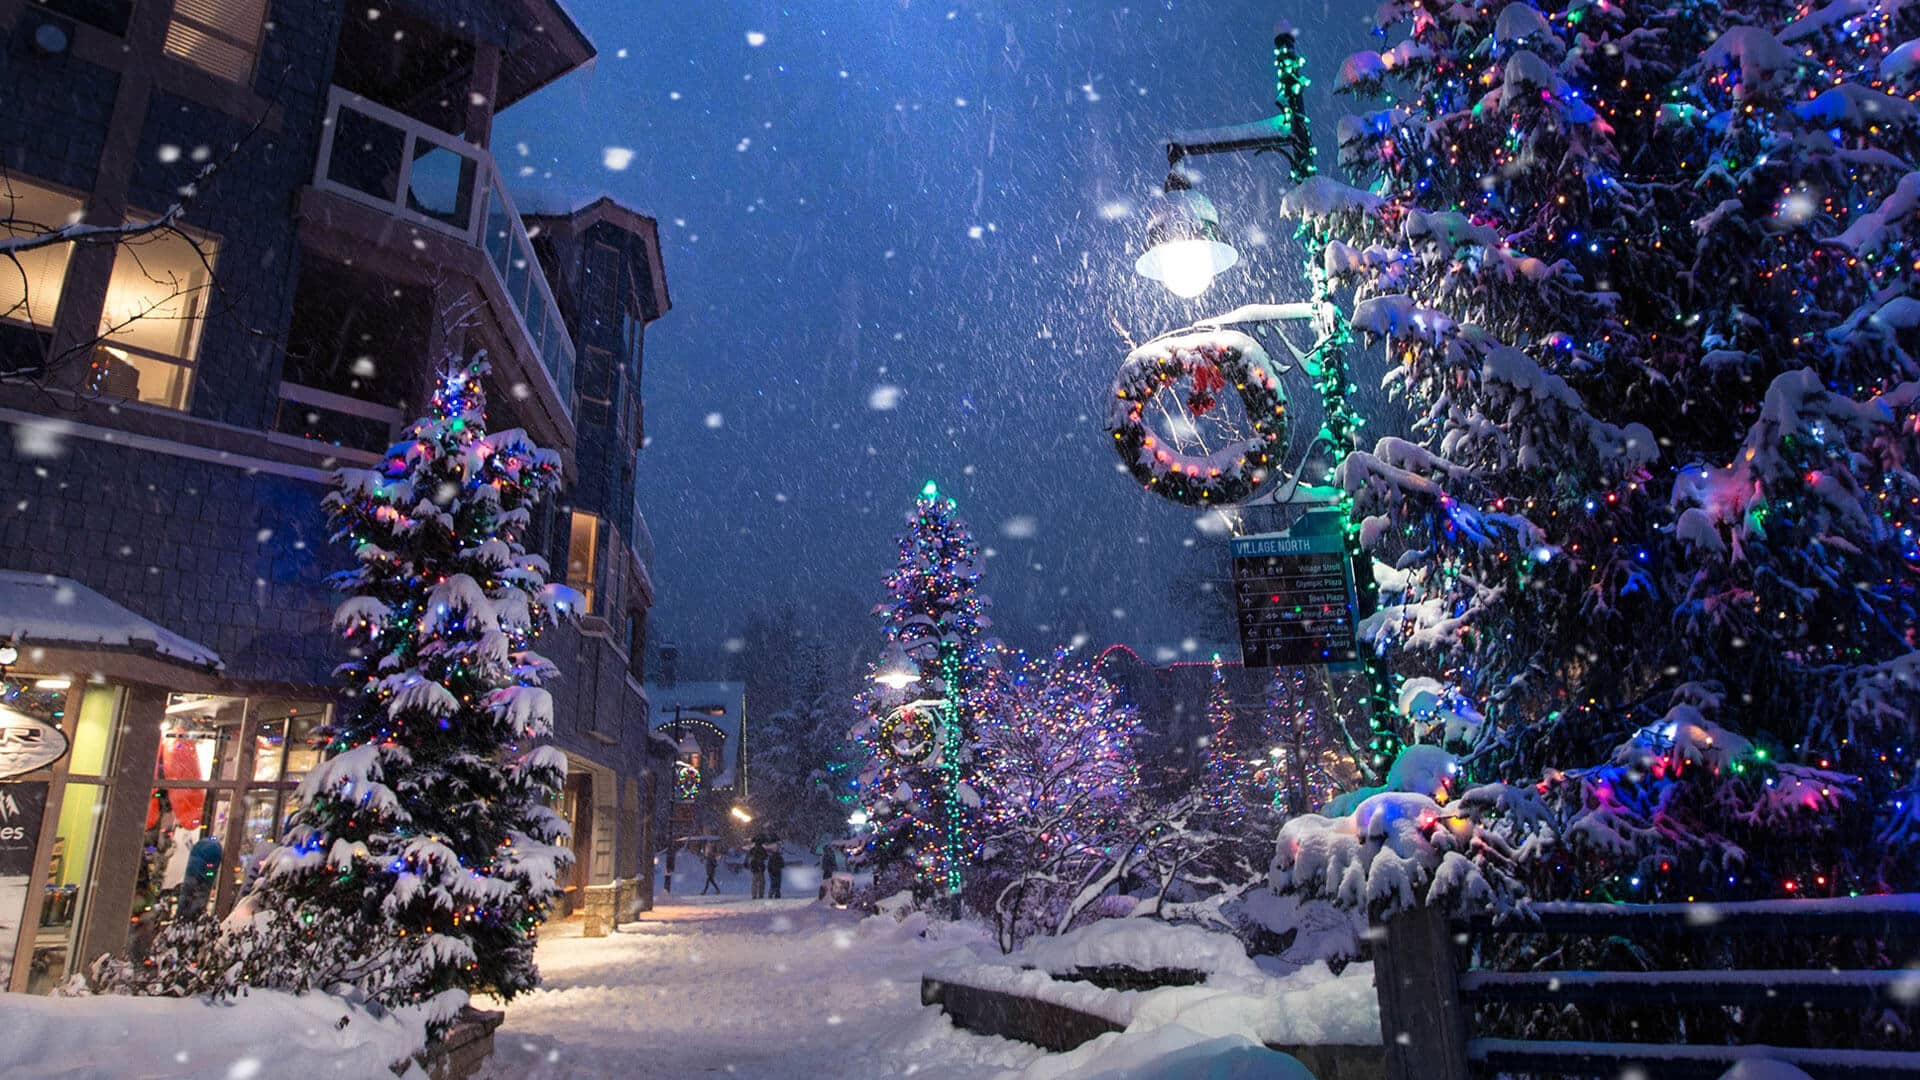 Landscape Lighting for Christmas and Holiday Season in Vancouver BC